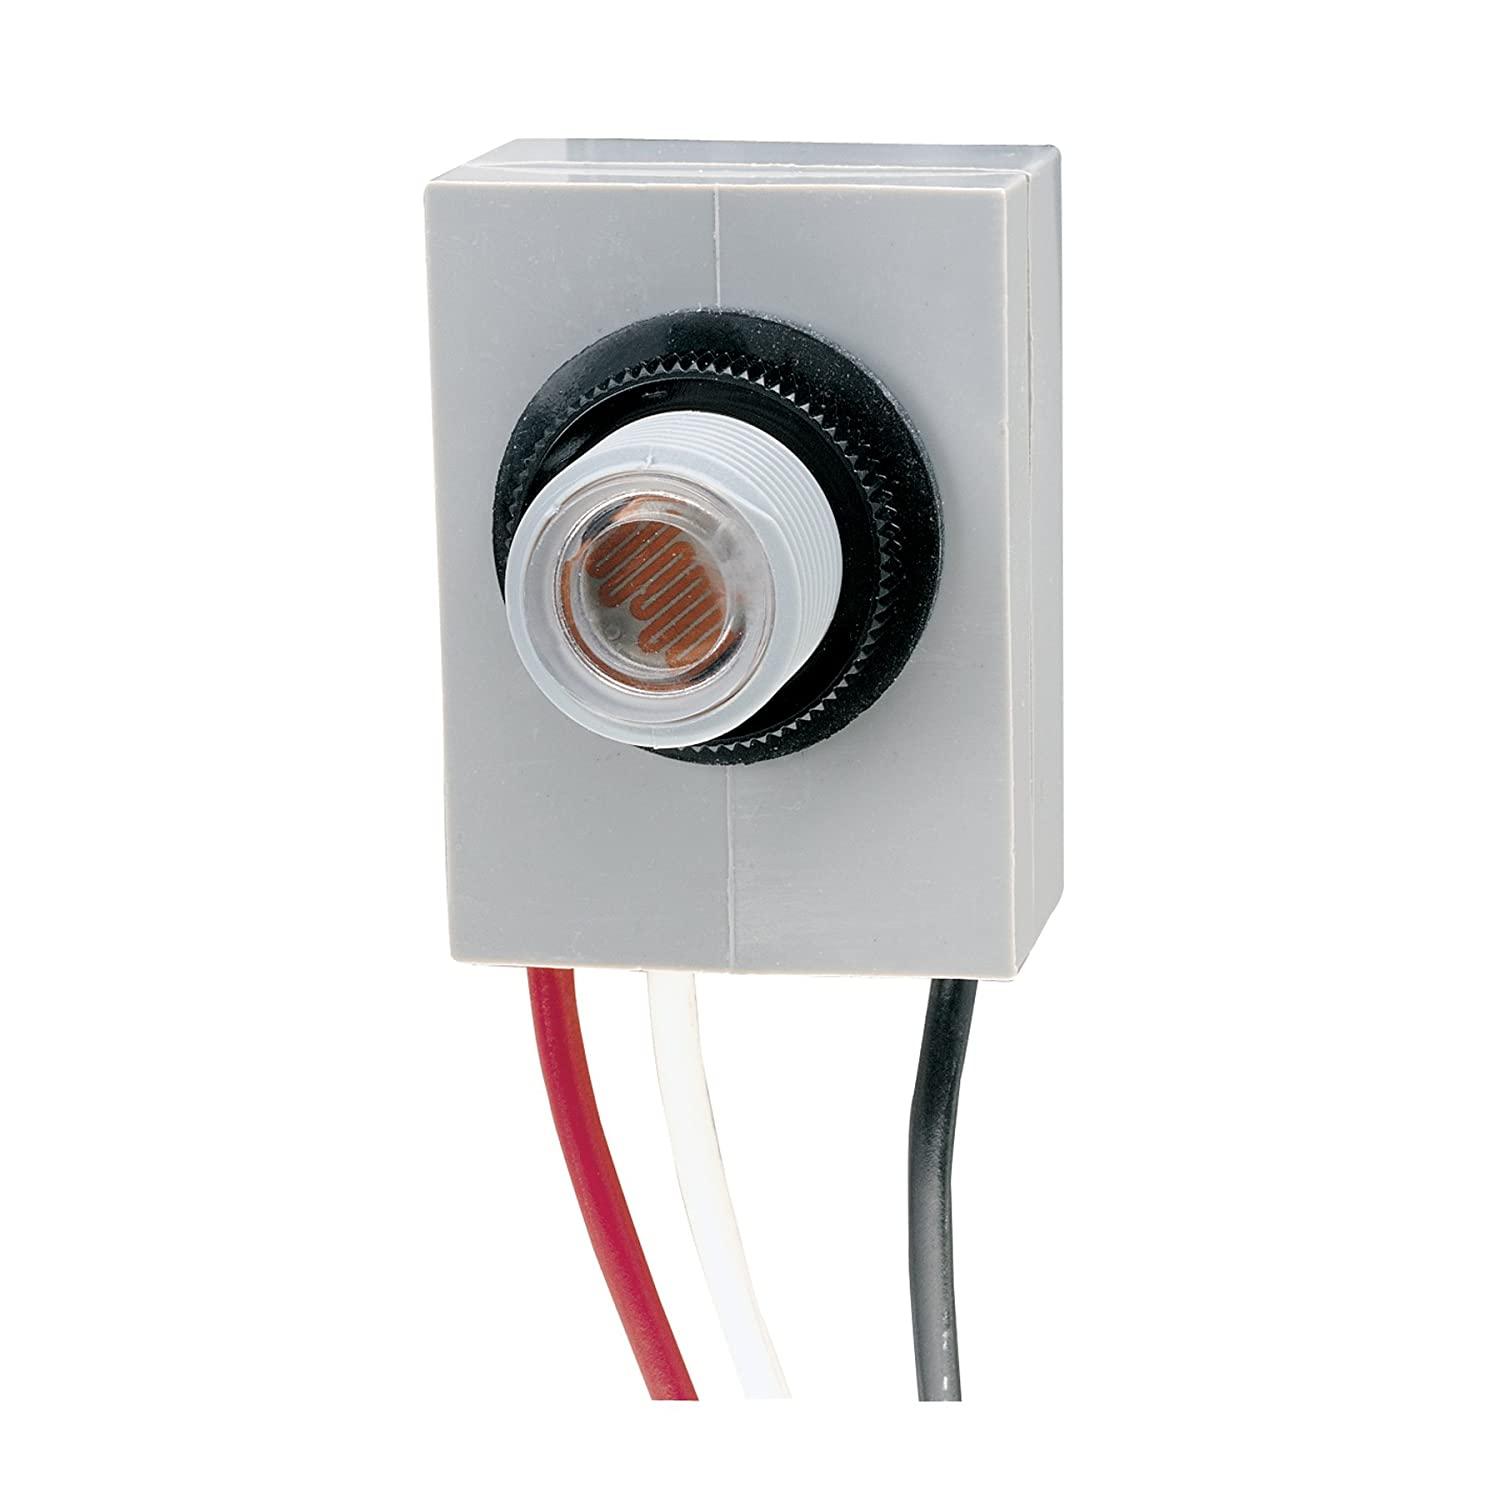 intermatic k4023c 208 277 volt fixed position thermal photocontrol rh amazon com Photocell Sensor Circuit Diagram Wiring Photocell Light Control